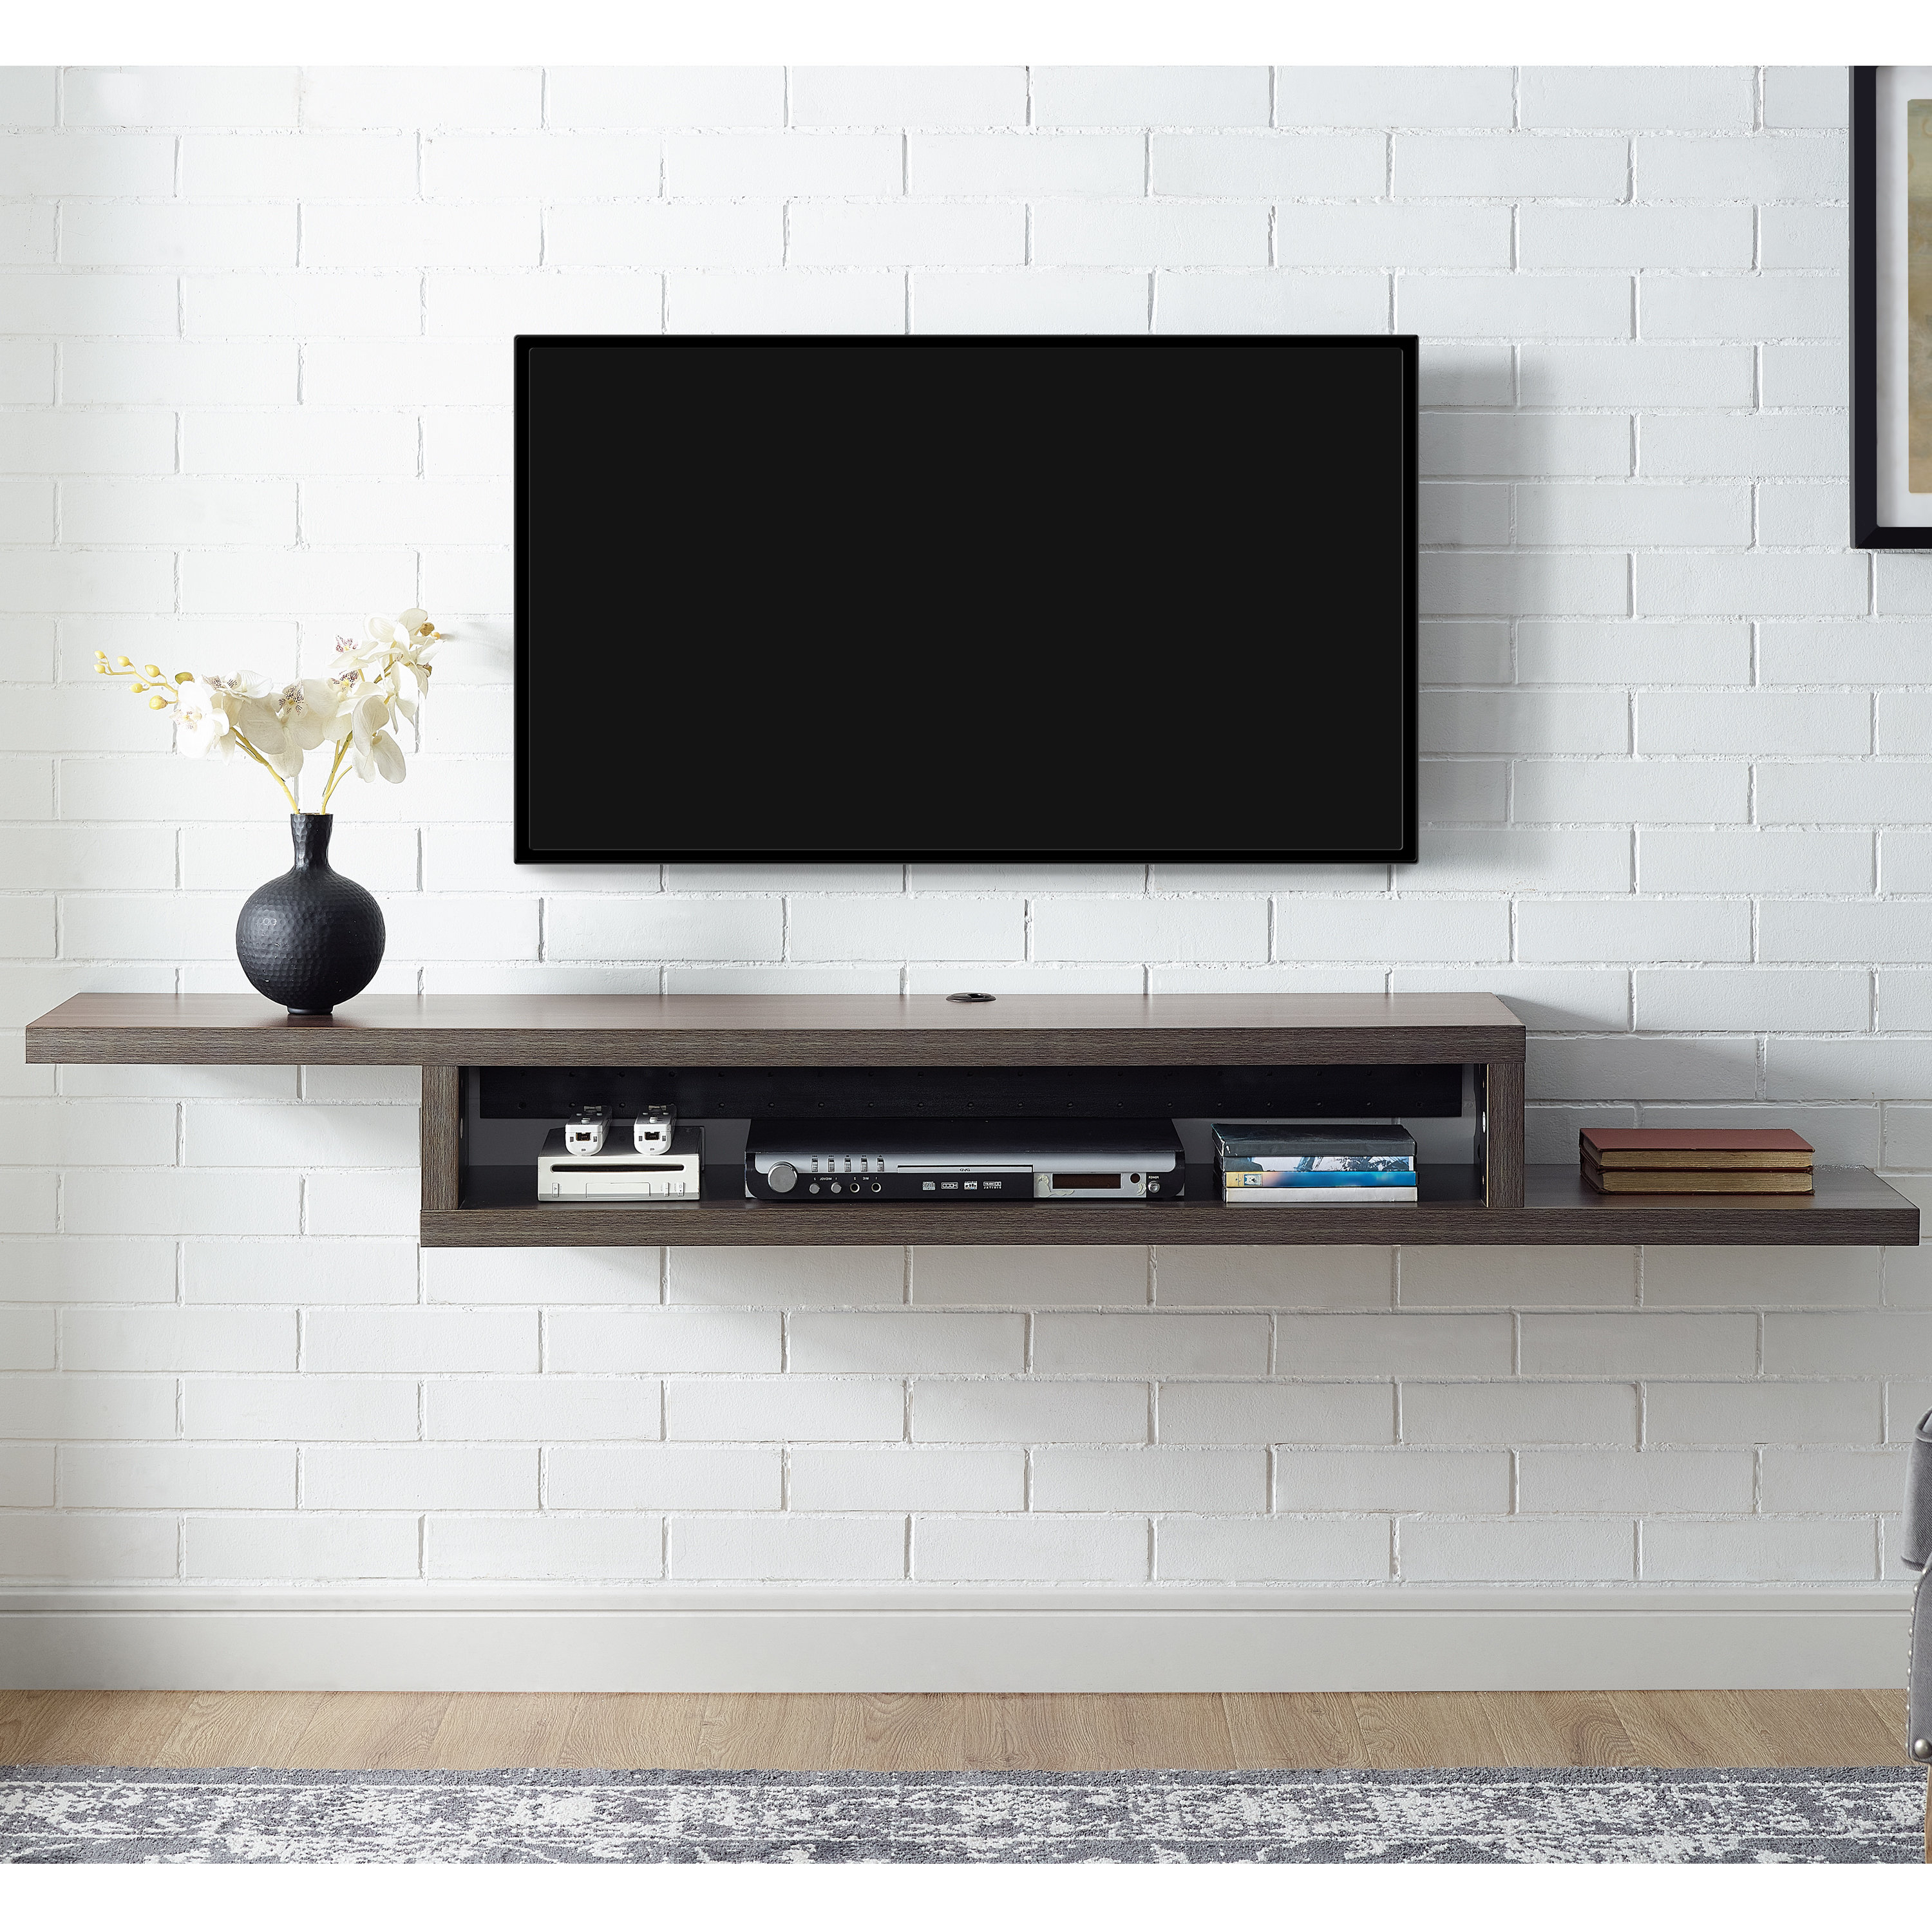 "Martin Home Furnishings Ascend 60"" Asymmetrical Wall Mounted Tv Regarding Favorite Wall Mounted Tv Racks (View 6 of 20)"